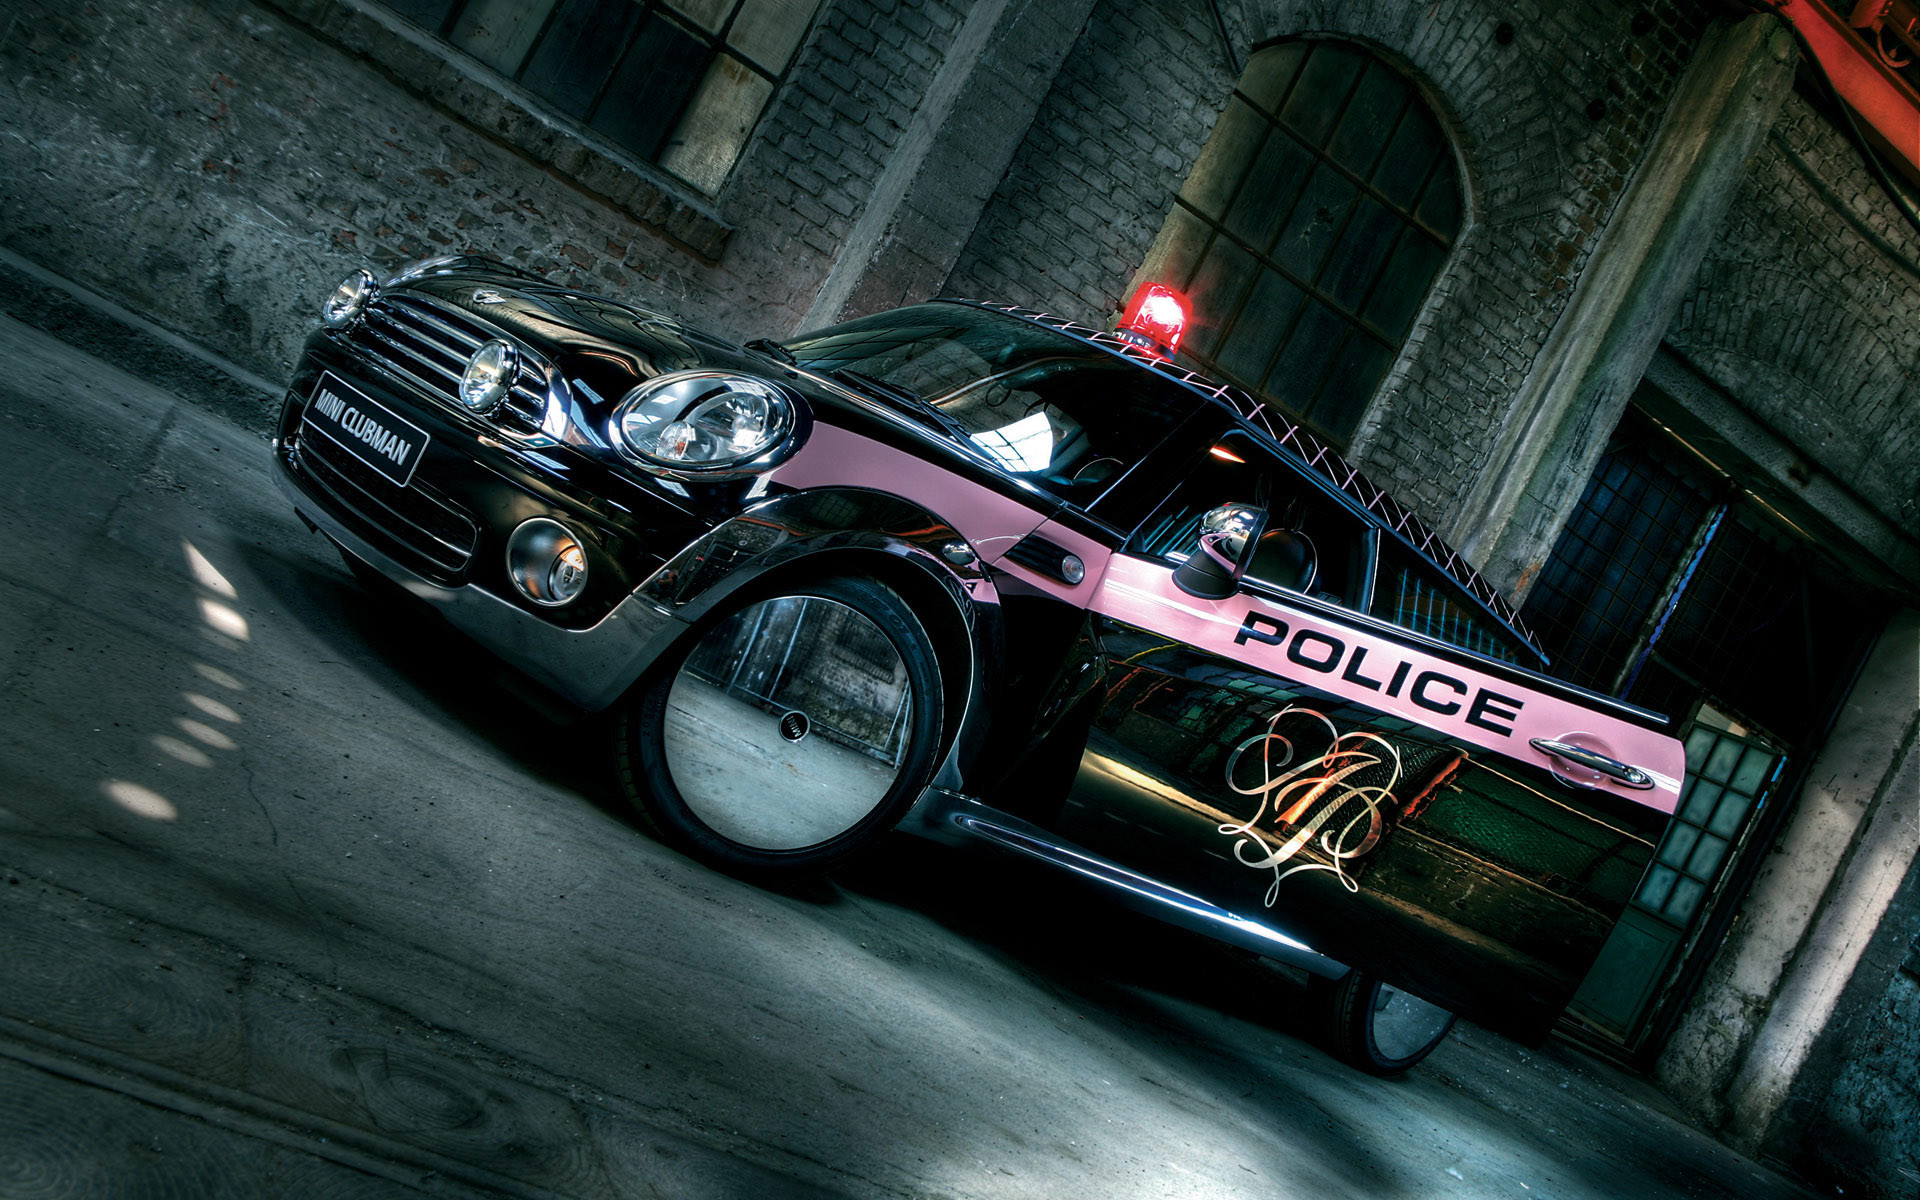 police screensavers and wallpaper 66 images